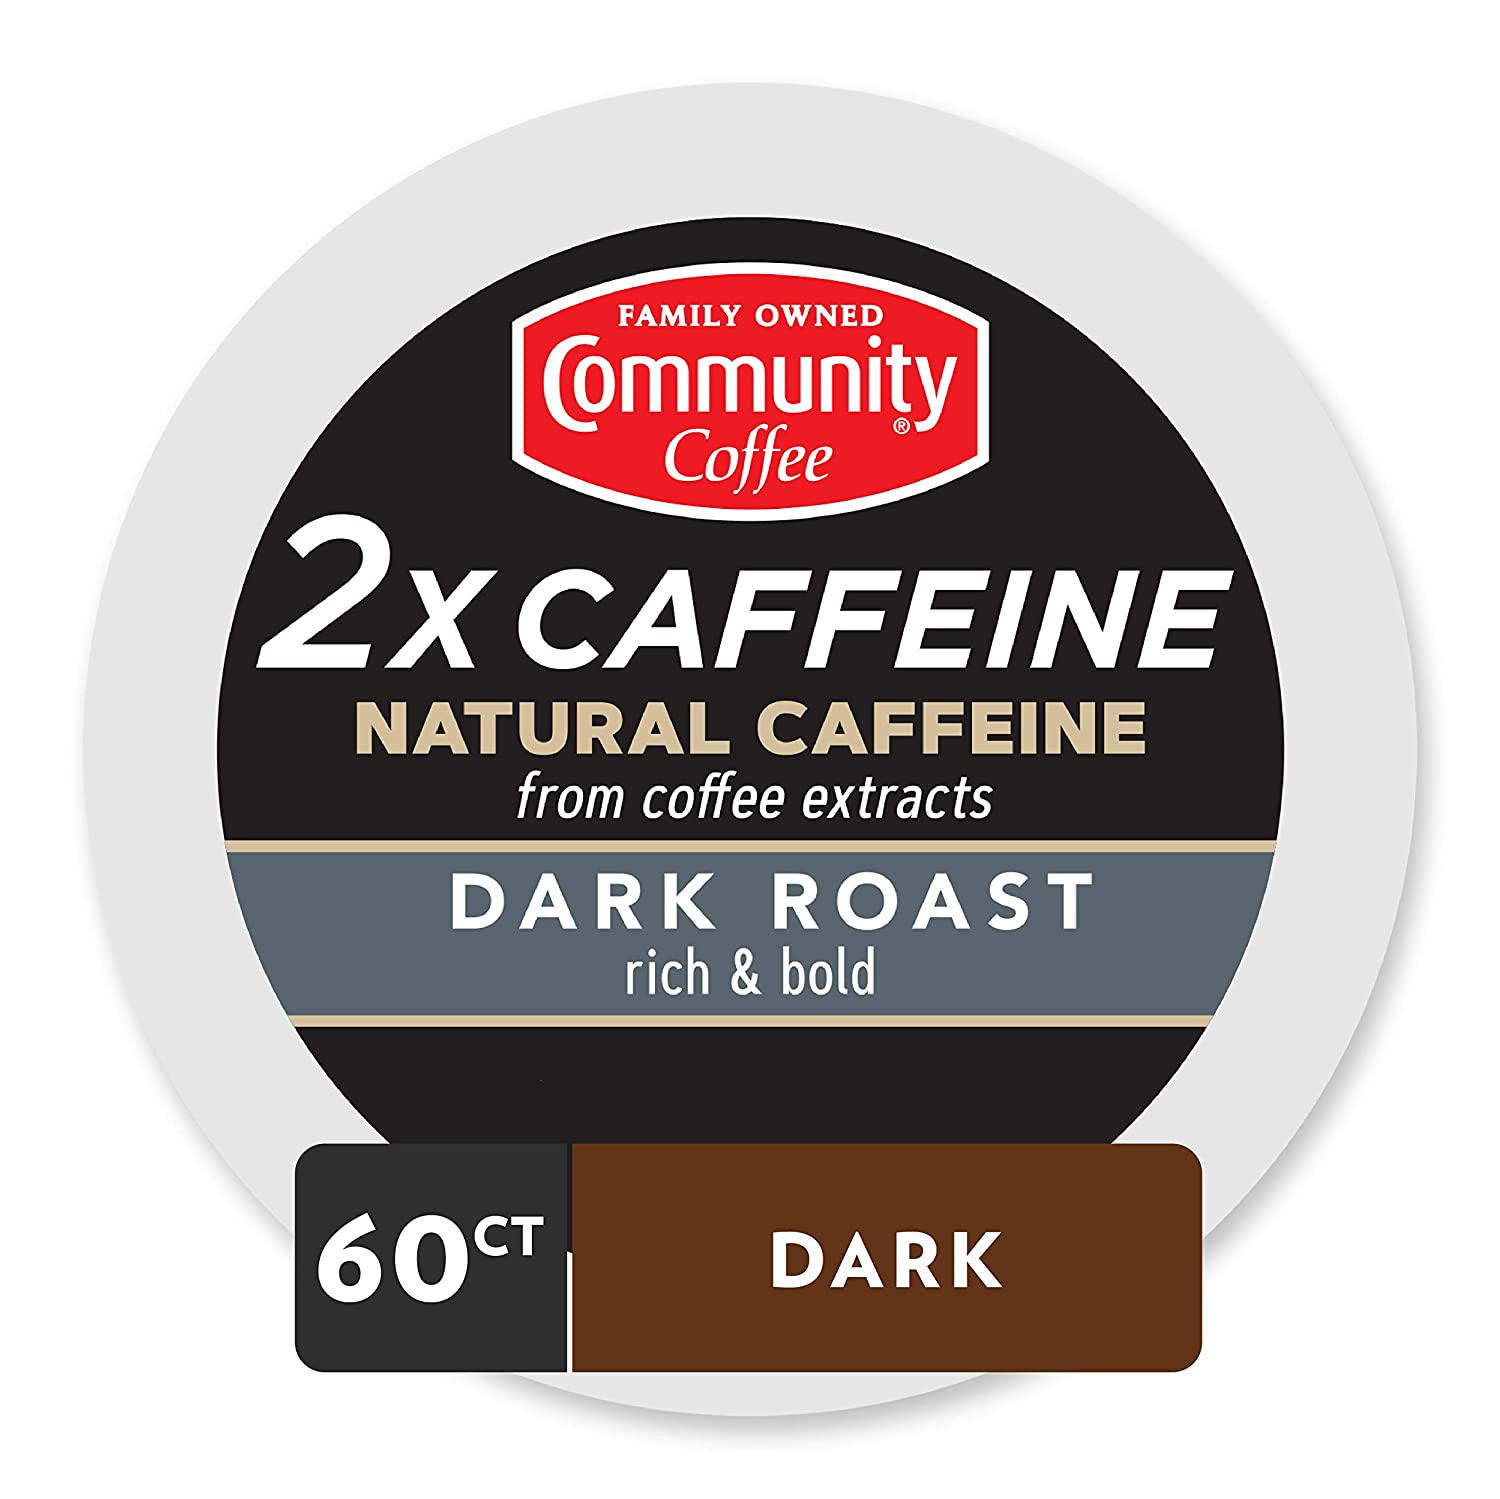 Community Coffee - 2X Caffeine Dark Roast 60Count (6 Pack of 10) Single Serve Coffee Pods, Compatible with Keurig 2.0 K Cup Brewers